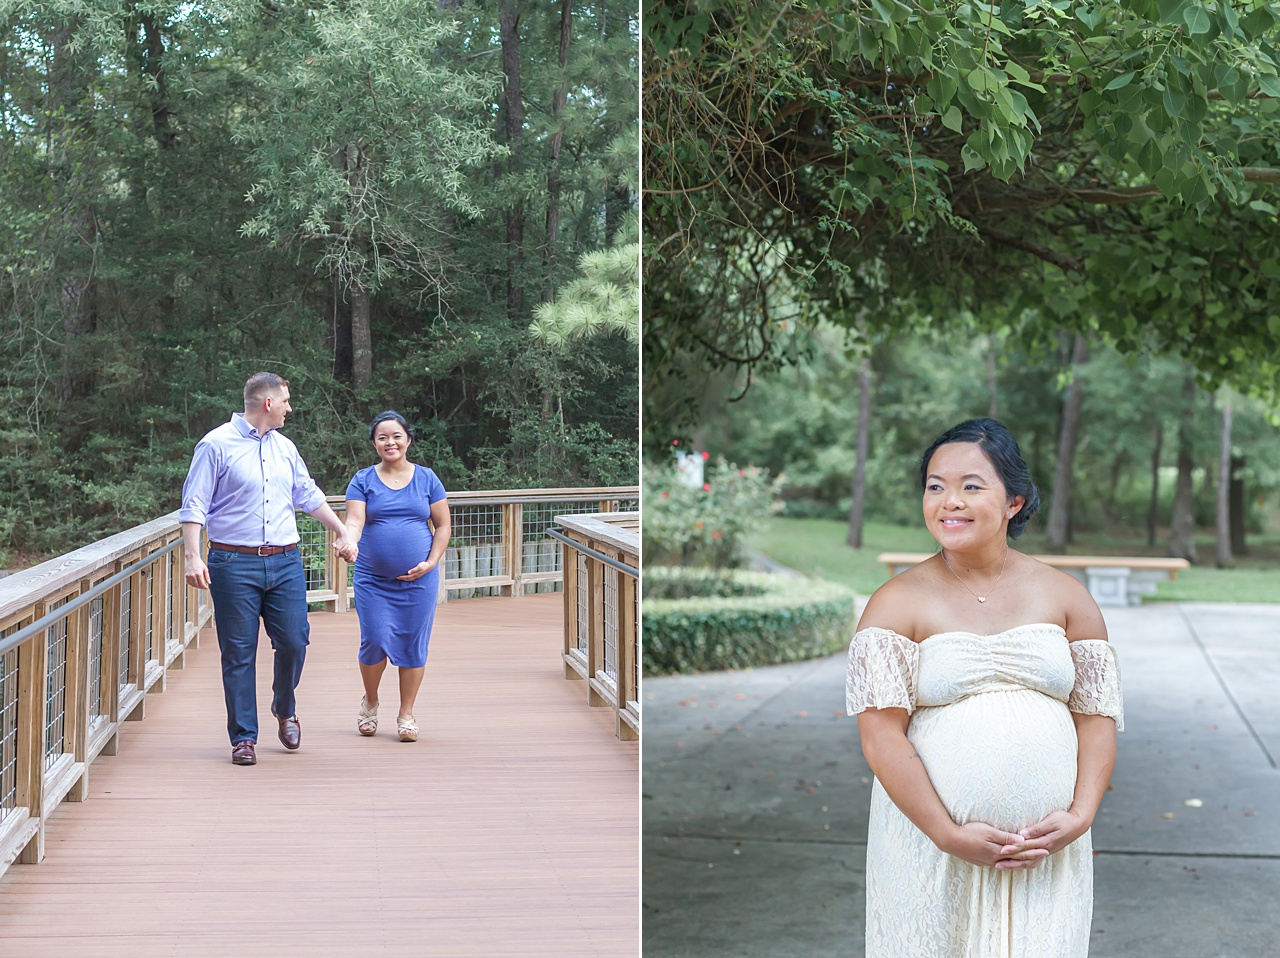 sweet outdoor summer maternity photos in the woodlands by kristal bean